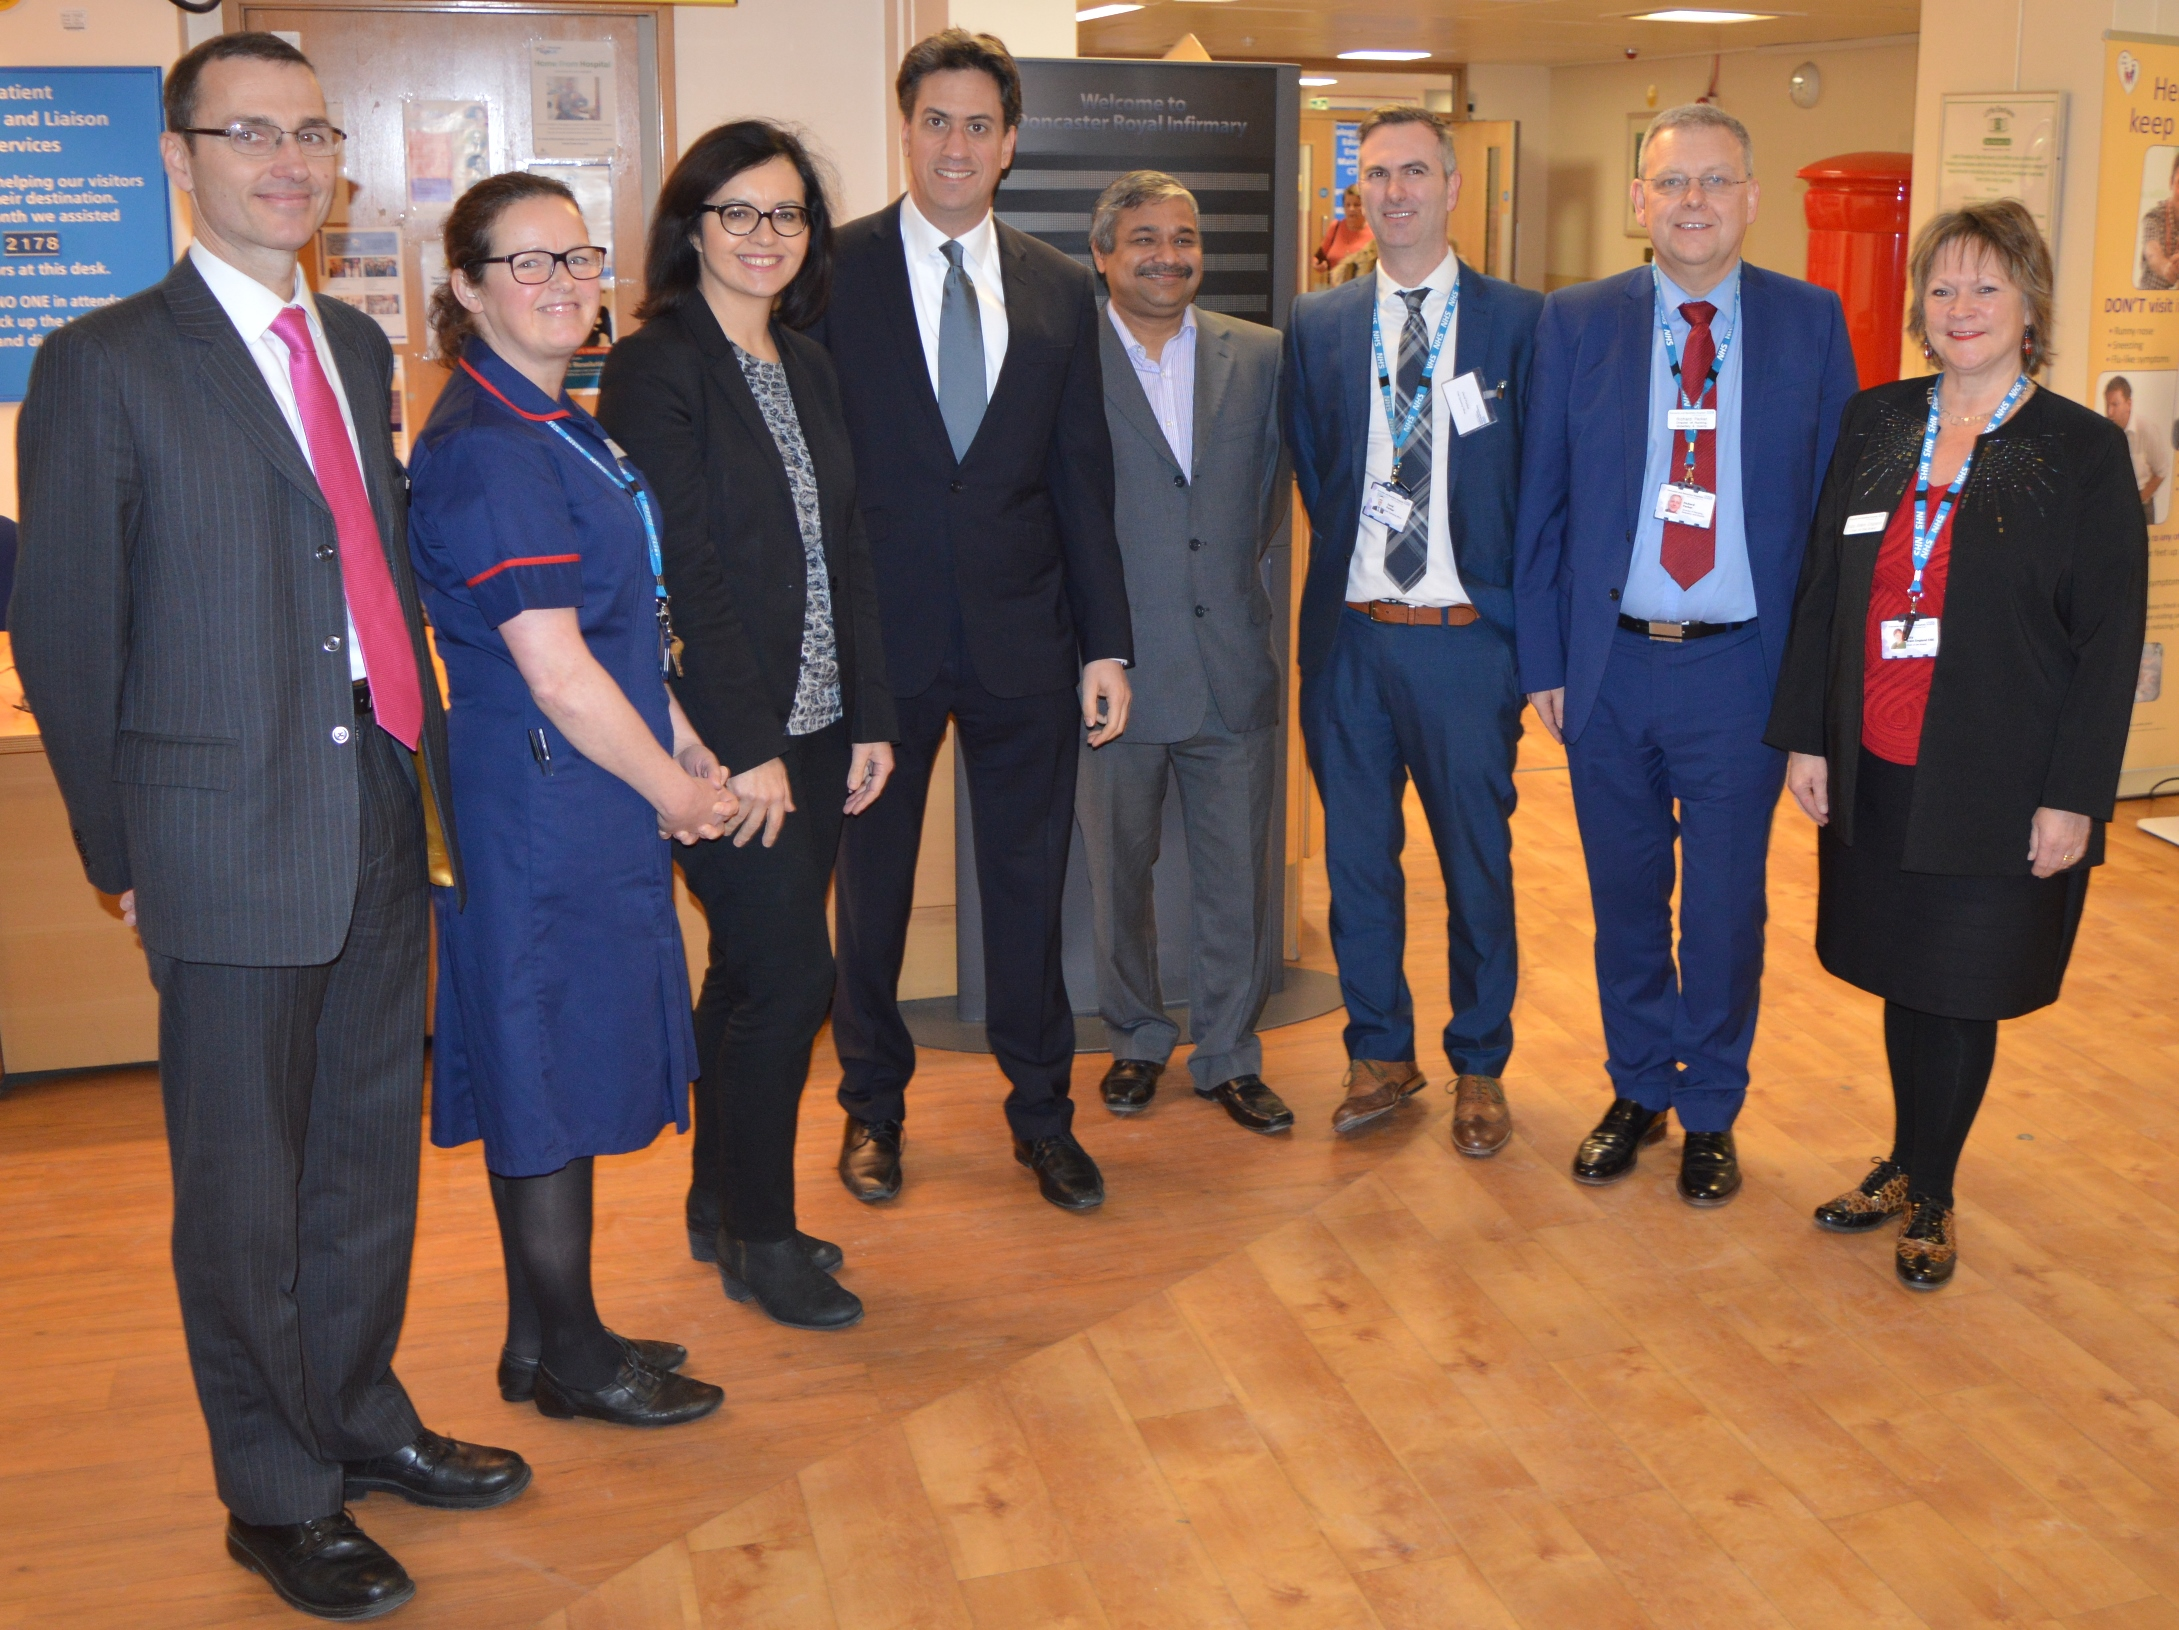 Photo (left to right): Dr Tim Noble, Emergency Care Group Director; Lesley Hammond, Operational Lead, Emergency Care Group; Caroline Flint MP; Ed Miliband MP; Dr Anurag Agrawal, Consultant Gastroenterologist; David Purdue, Chief Operating Officer; Richard Parker, Acting Chief Executive; and Suzy Brain England, Trust Chair